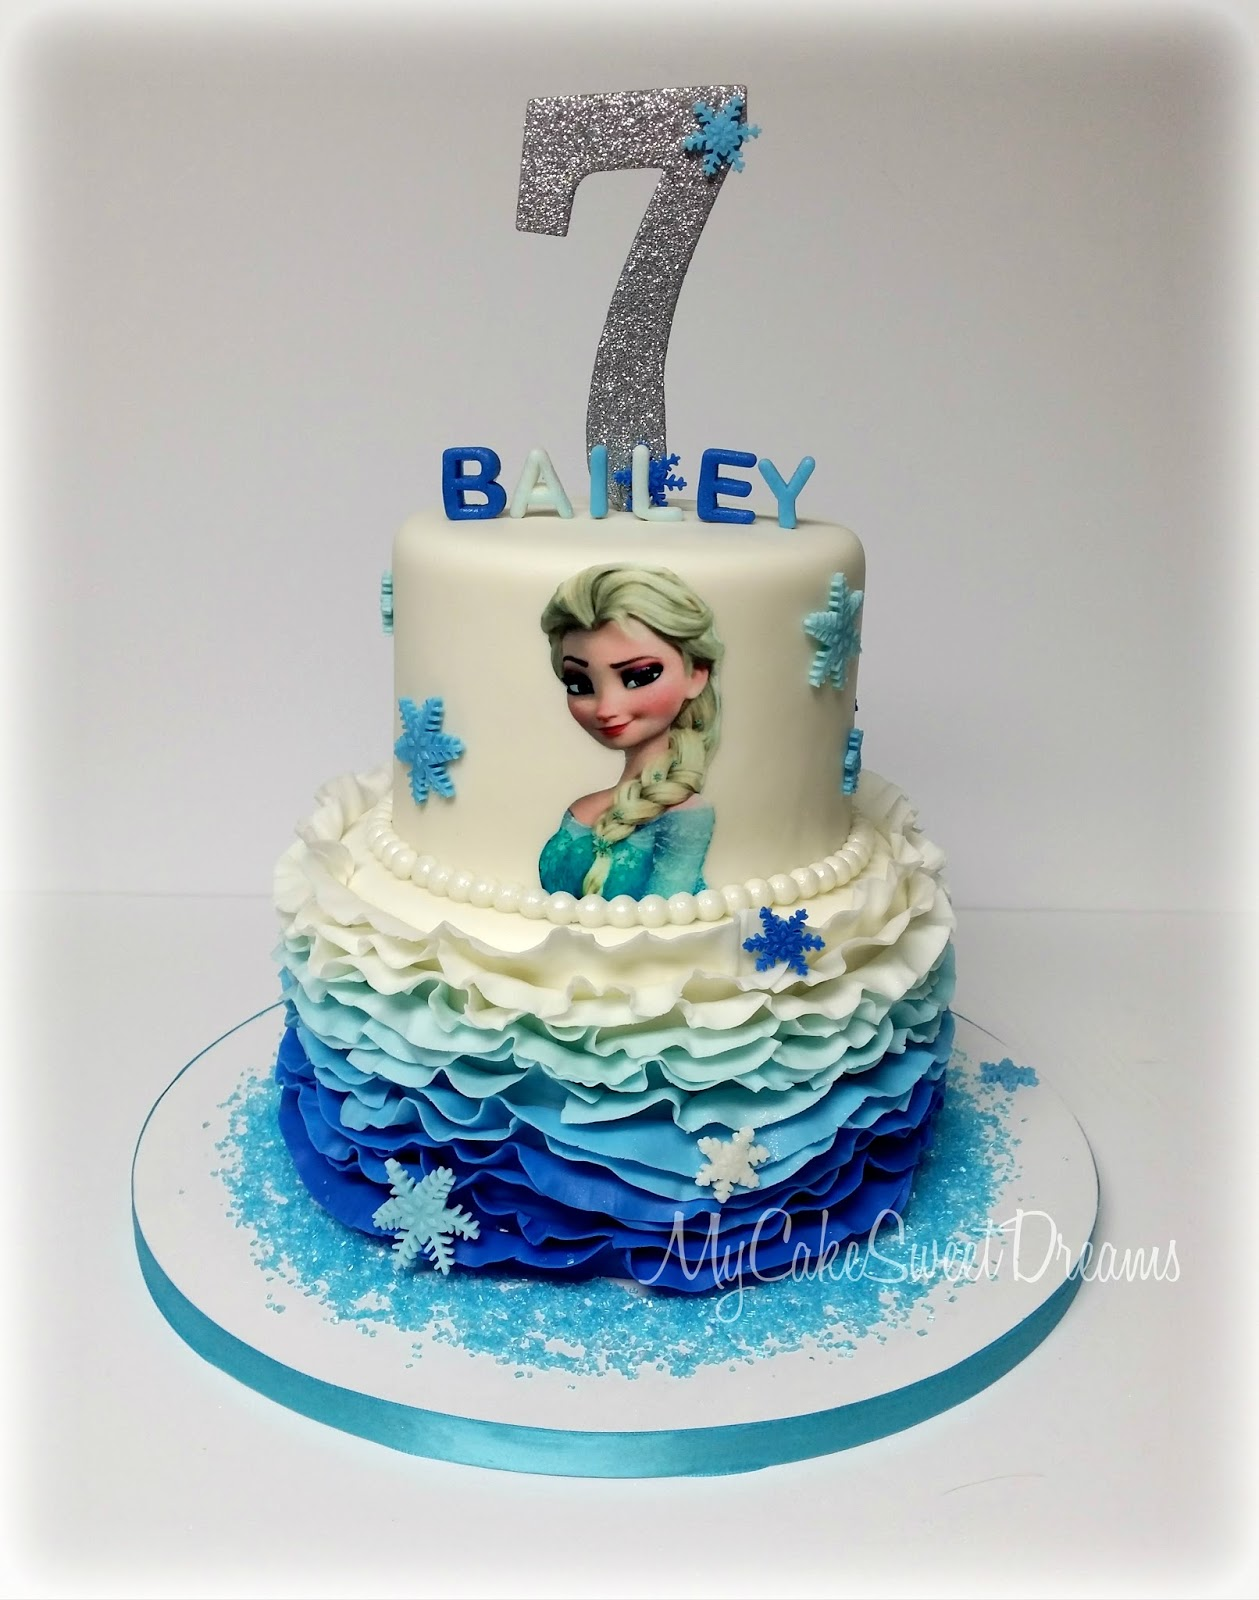 Frozen Themed Cake Design : My Cake Sweet Dreams: Frozen Themed Cake